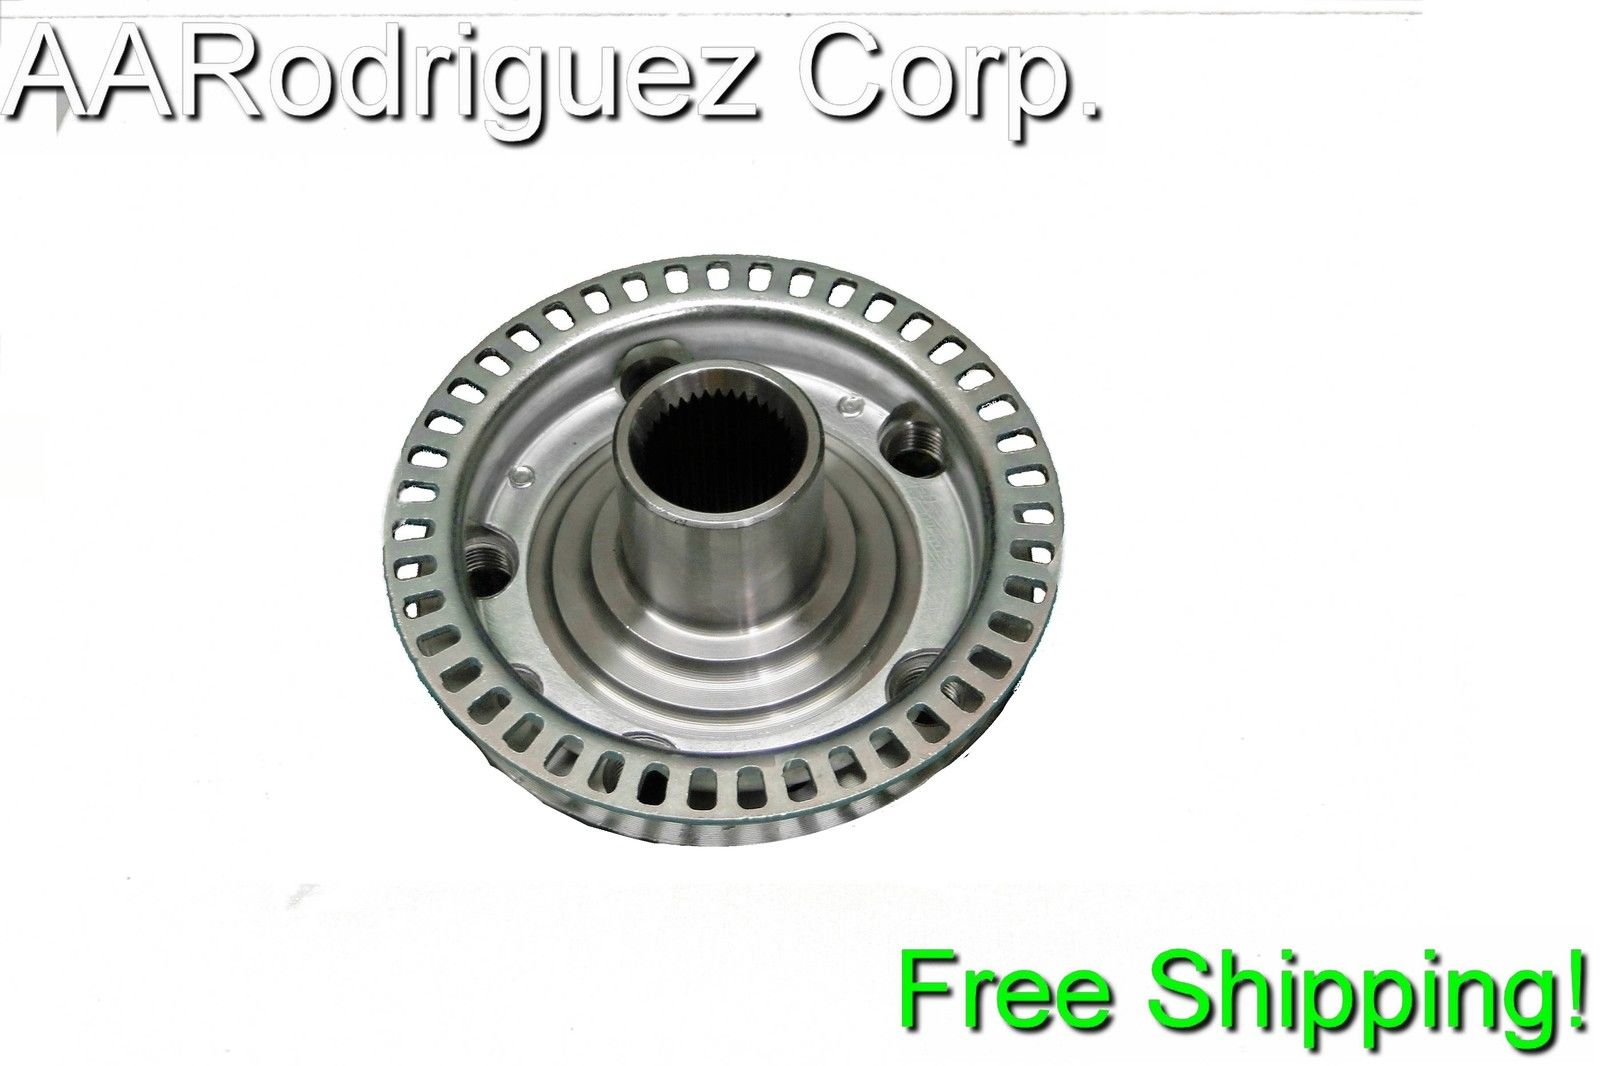 New Loaded Right Steering Knuckle Fits Vw Mk4 1 8t Amp Vr6